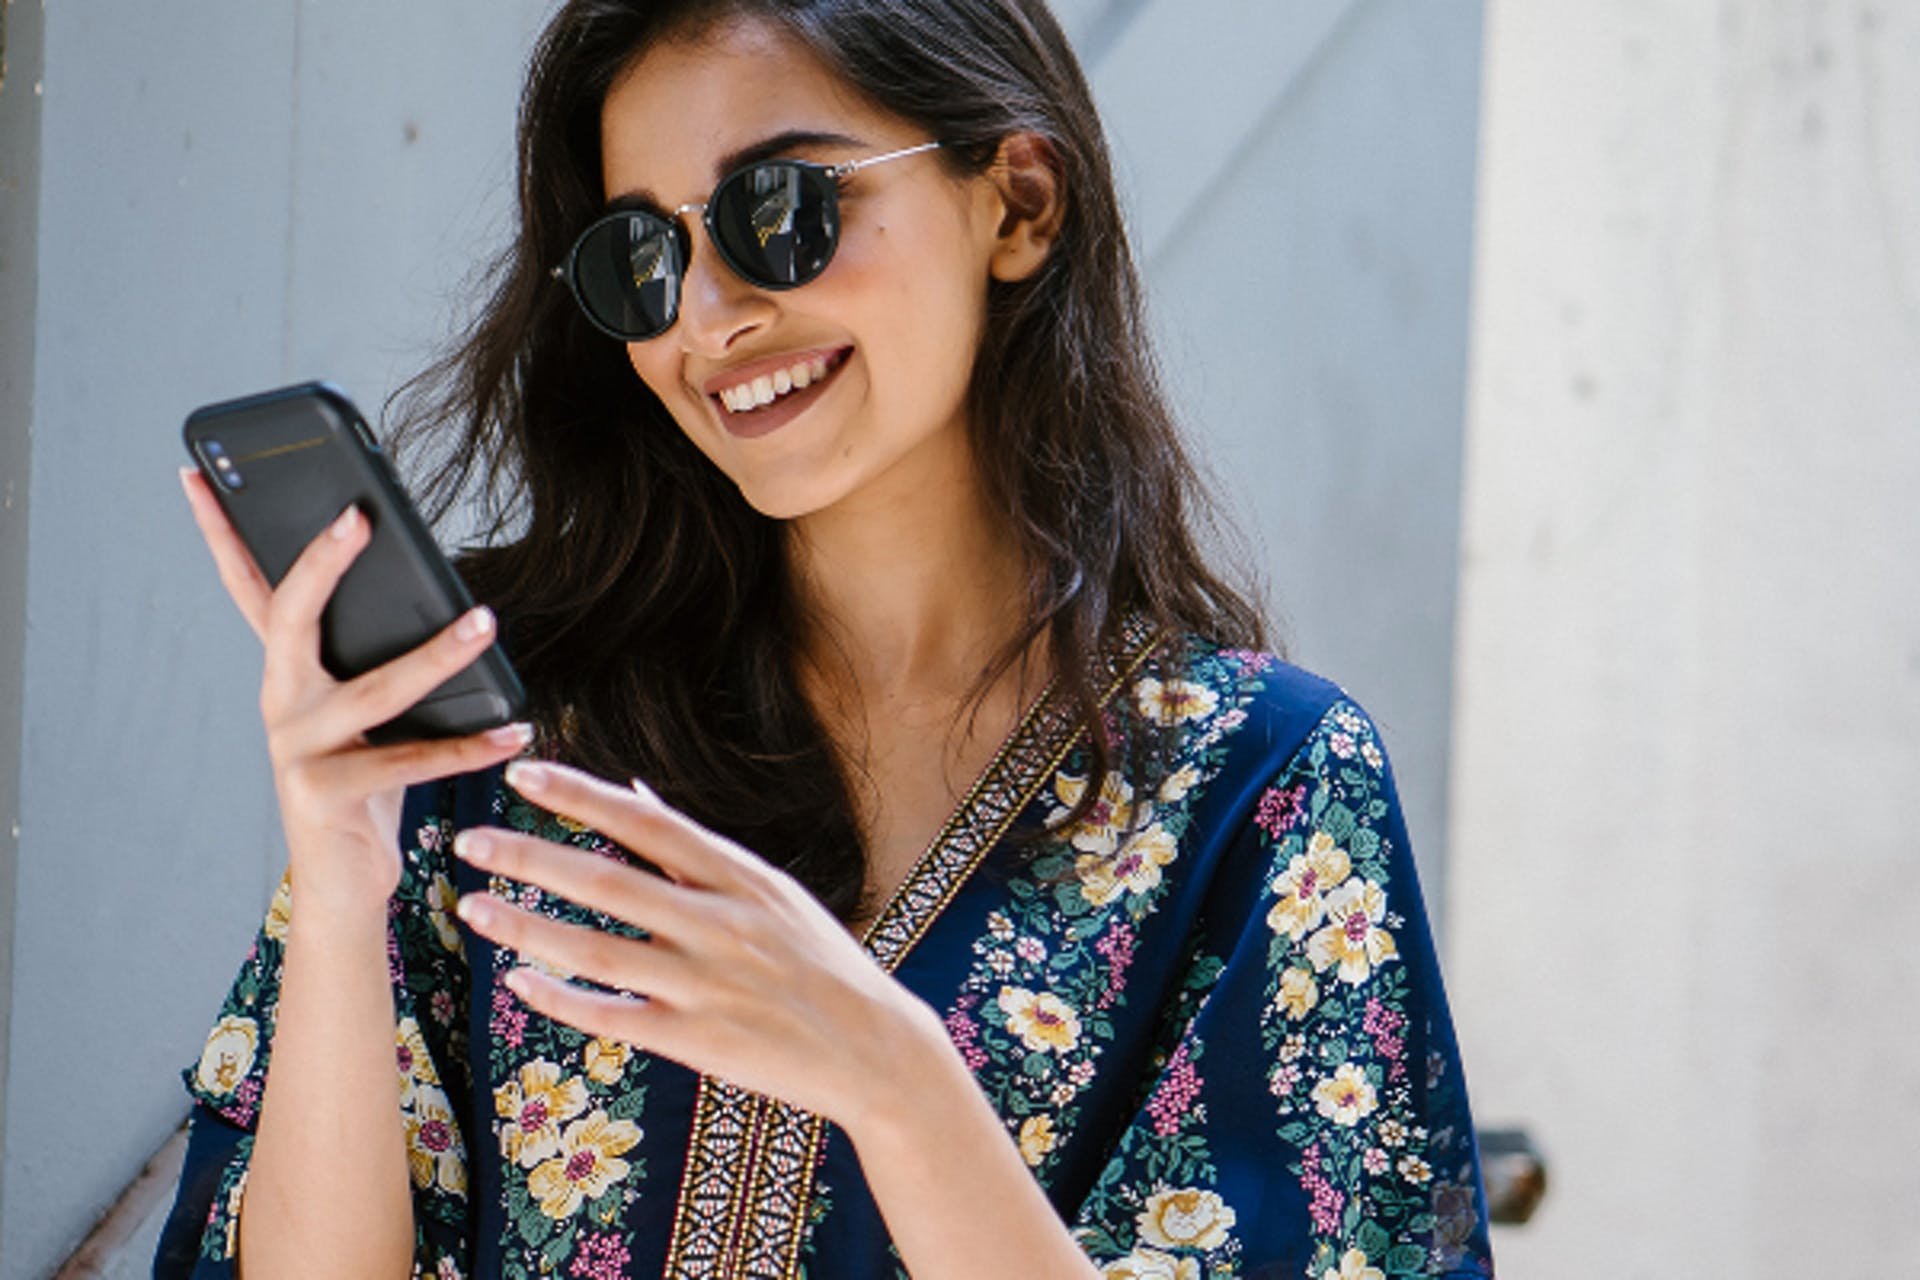 woman looking at her phone smiling